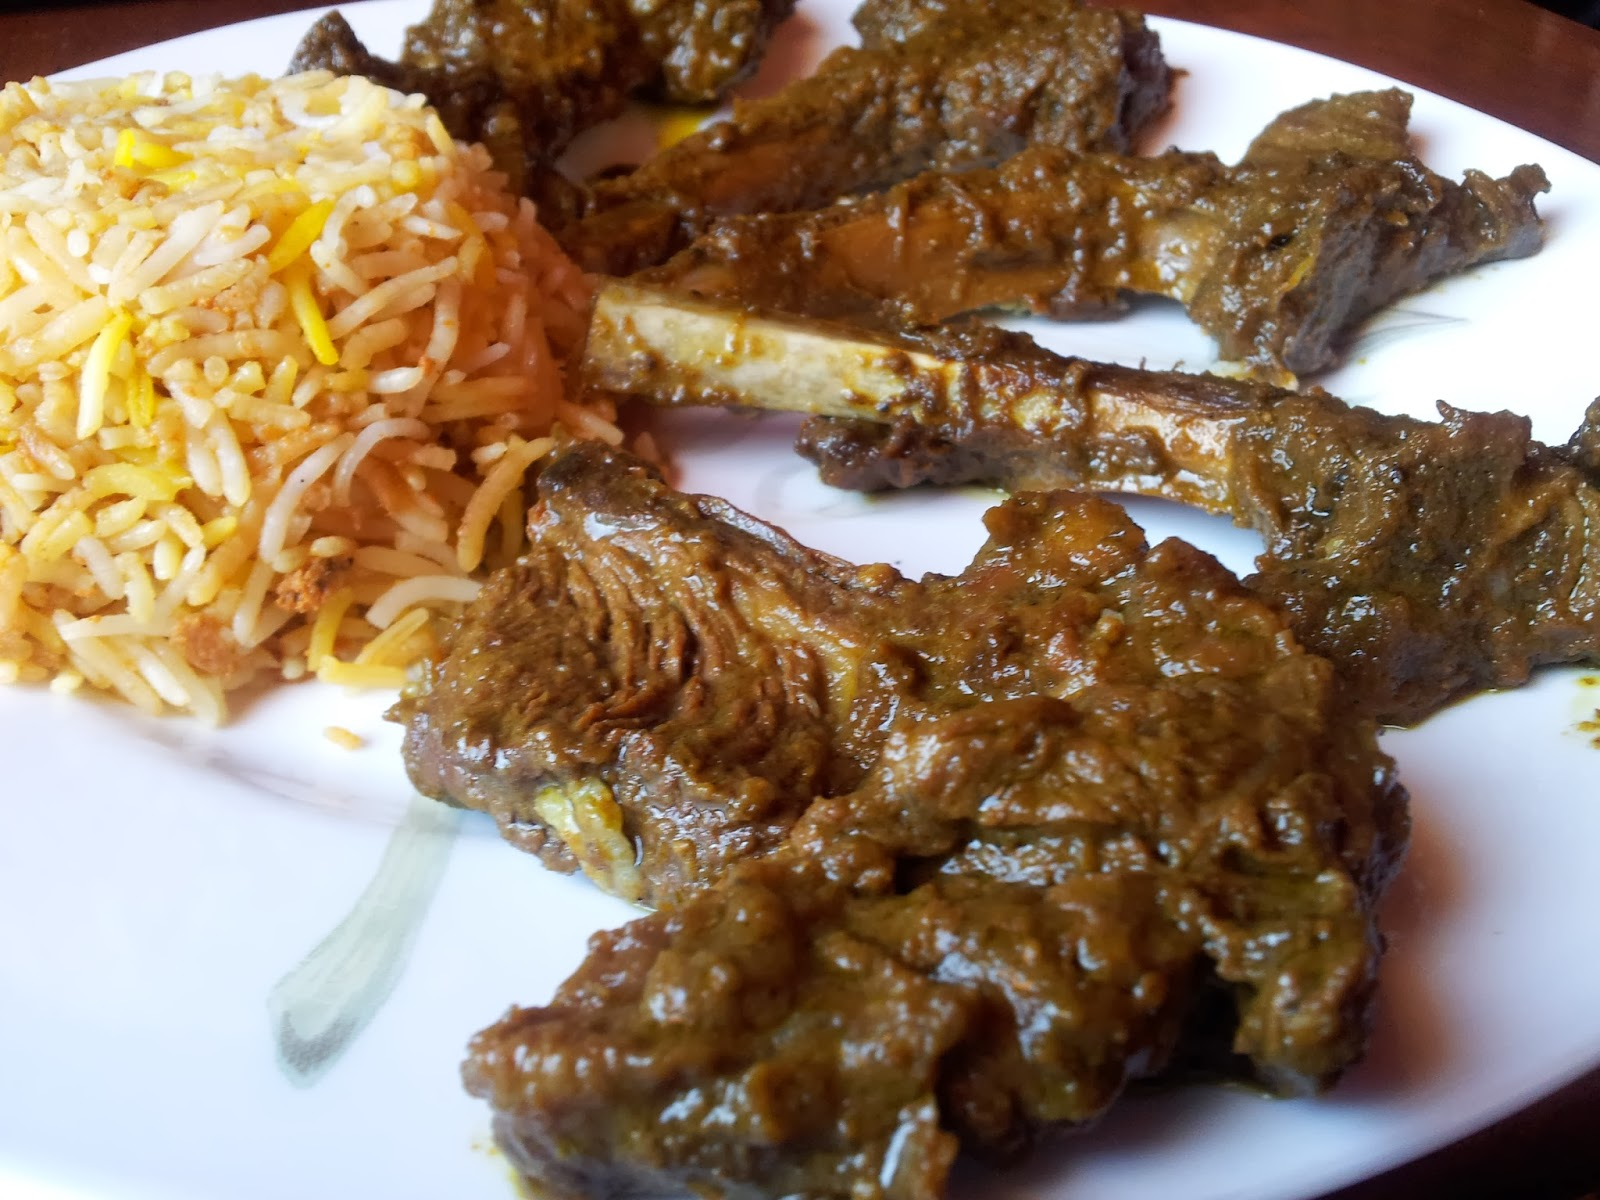 - The Food Blog: Lamb Chops braised in a puree of green Indian ...